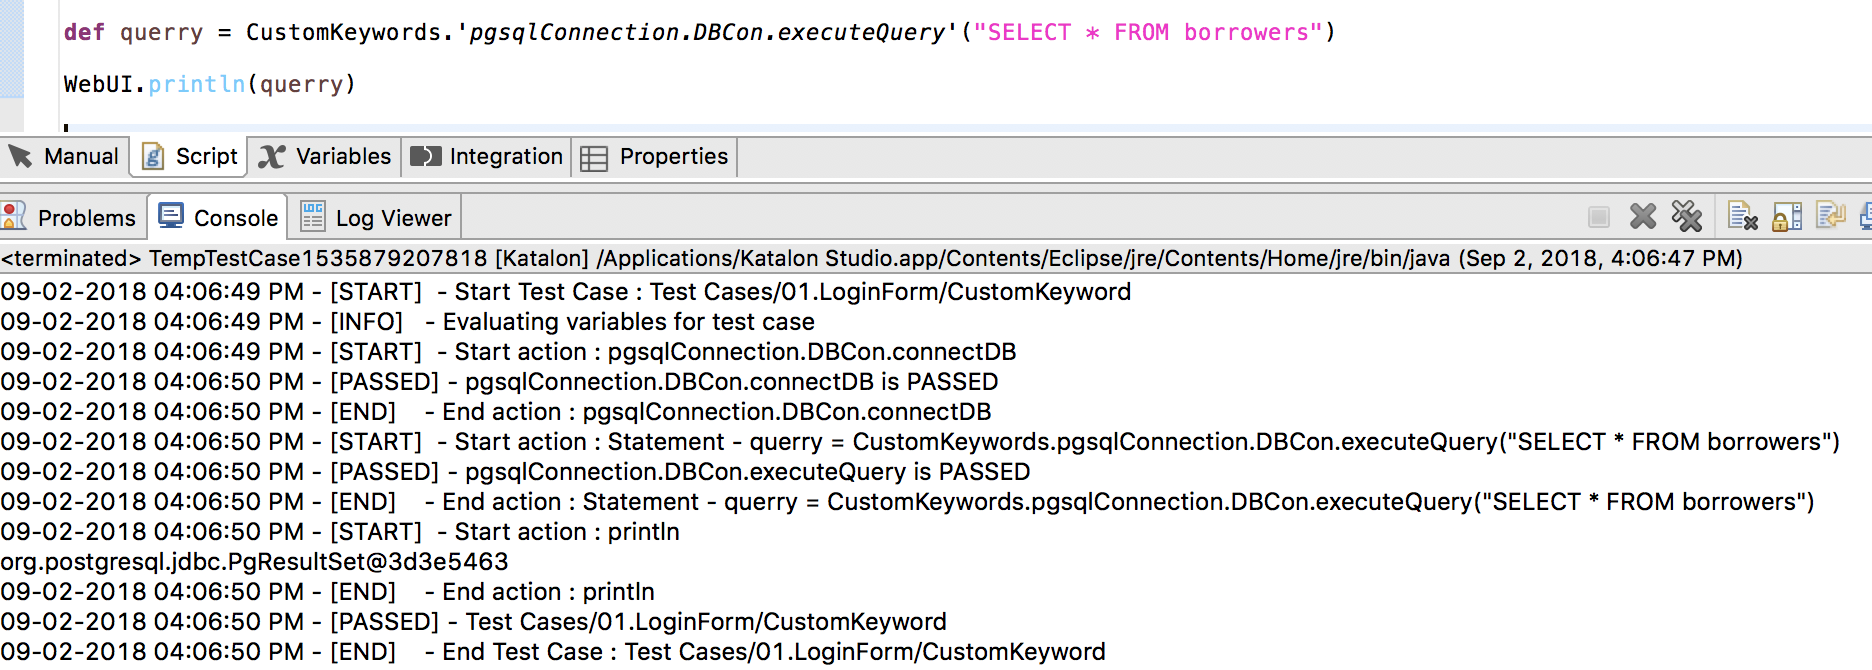 How can i conncet and execute query postgresql in katalon